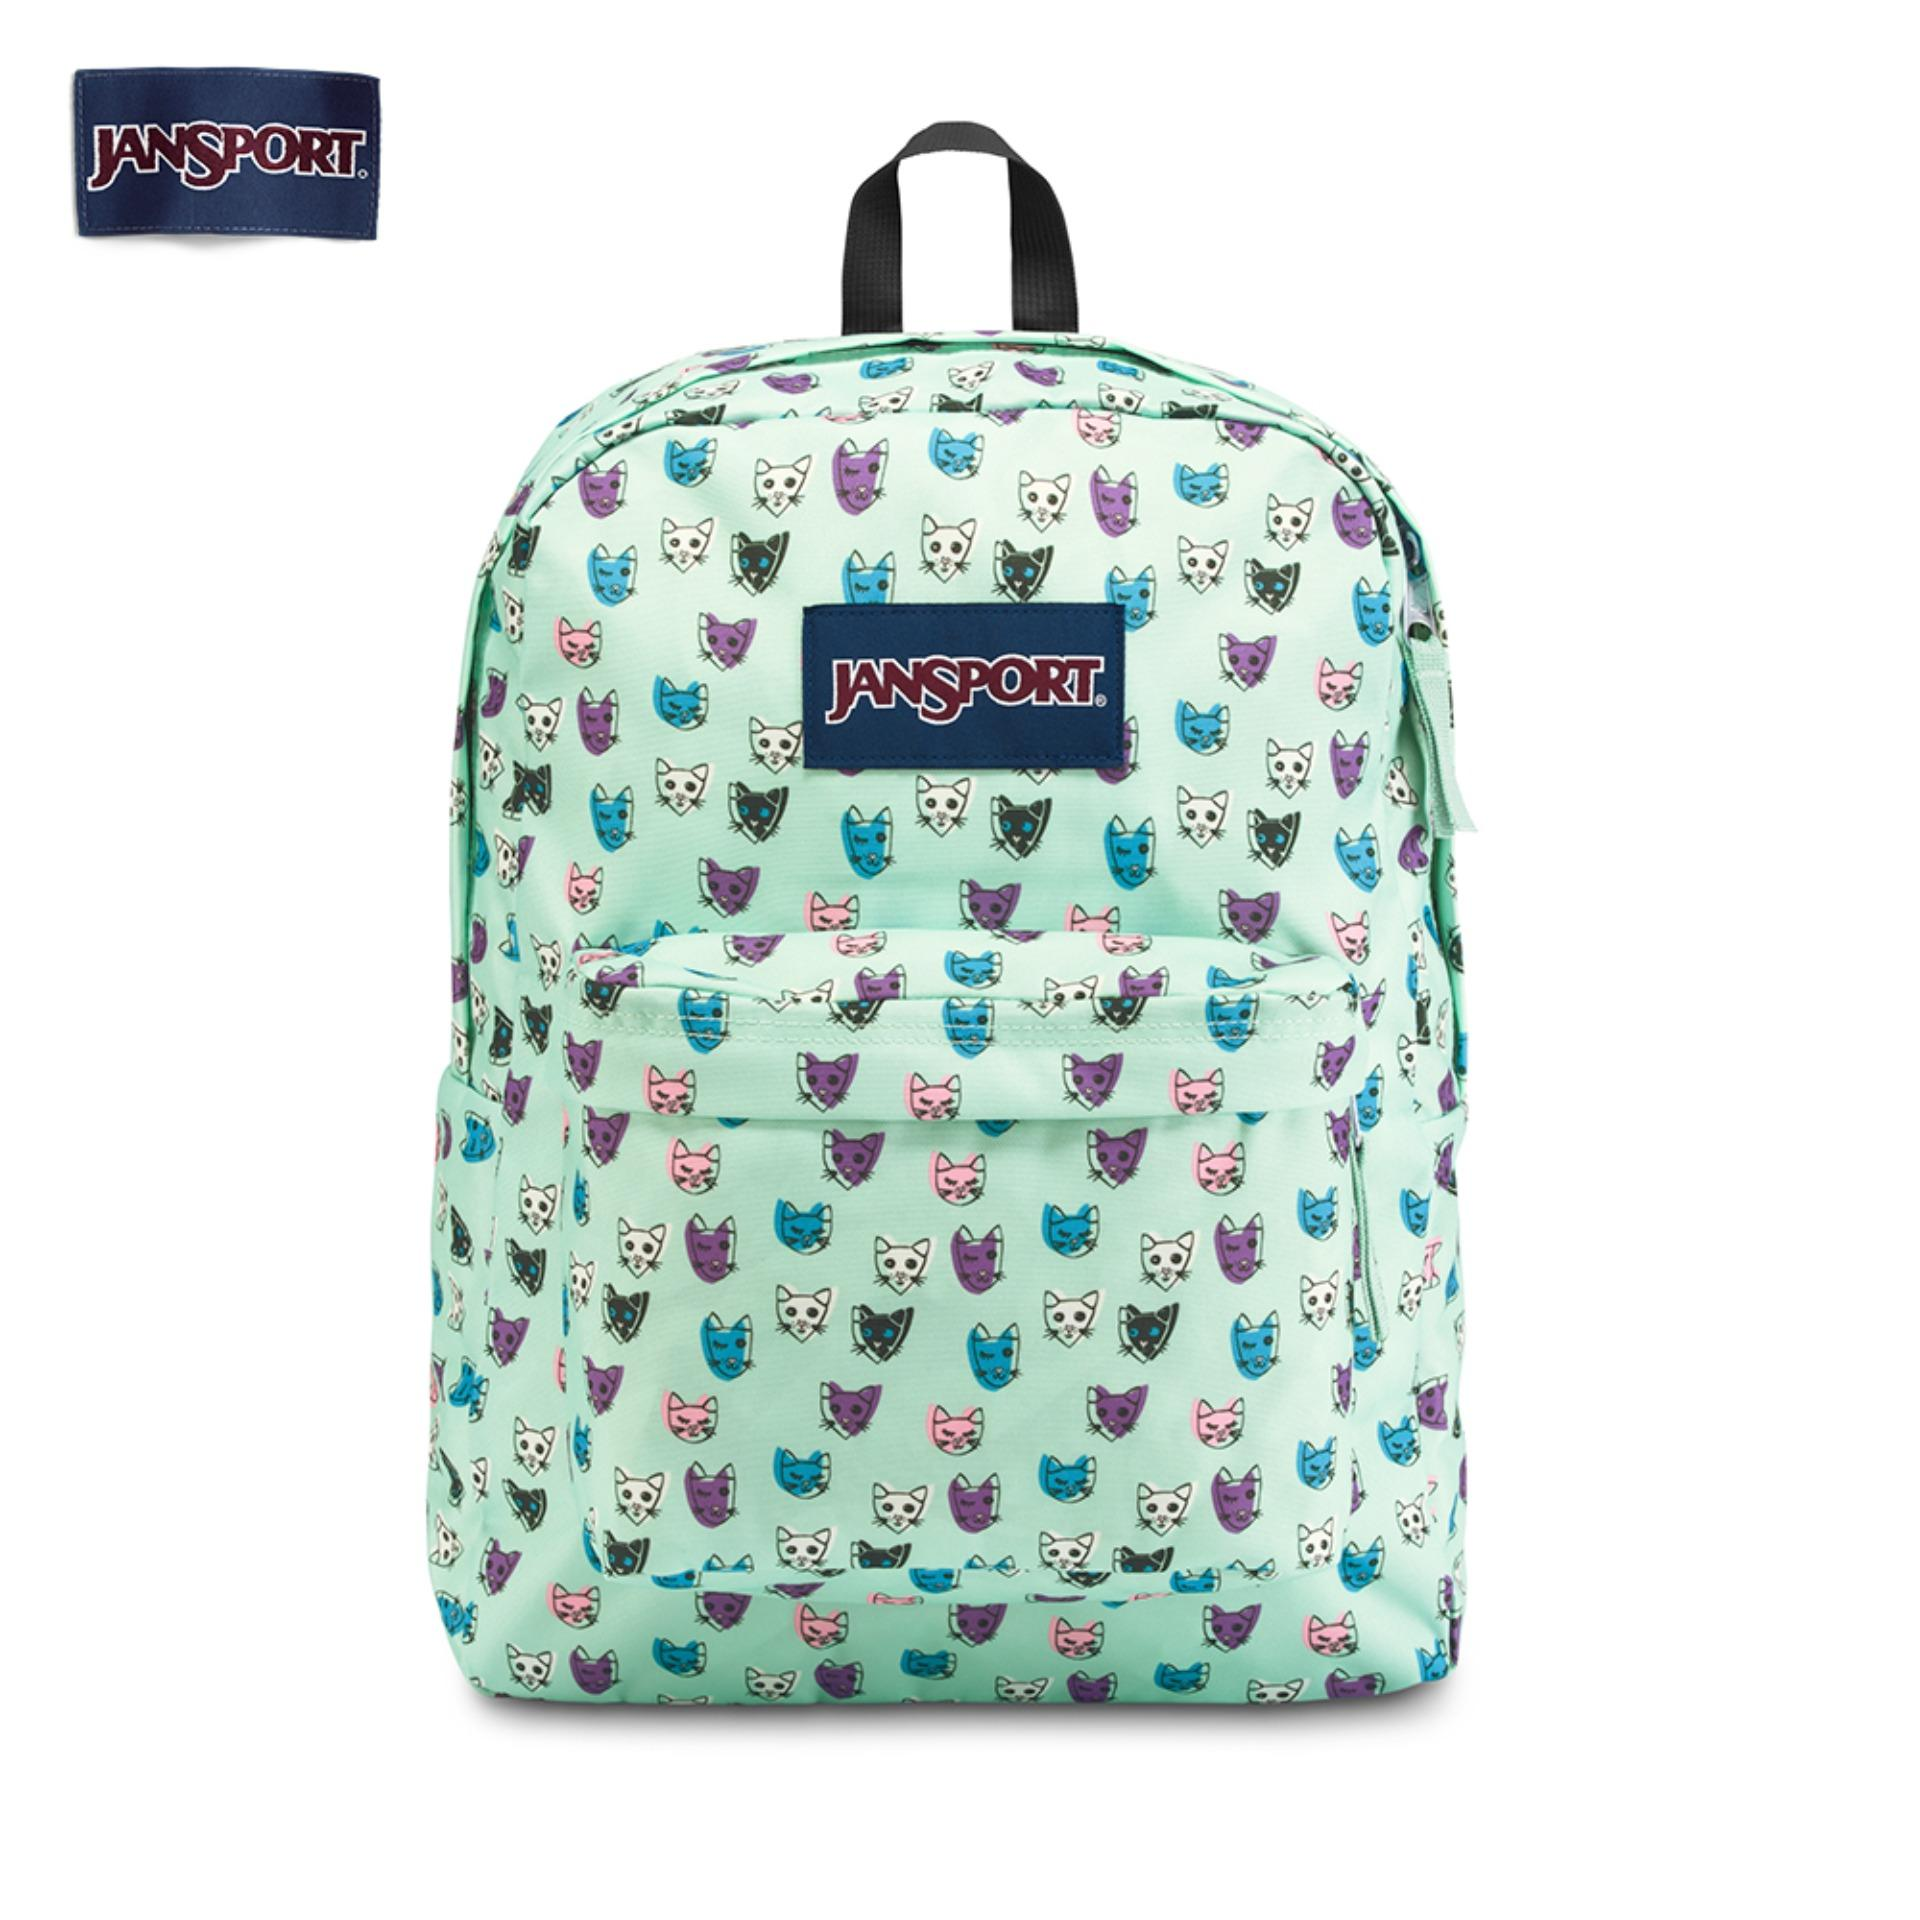 JanSport Philippines  JanSport price list - JanSport Bags   Backpacks for  sale  8a3e6244f2ab4